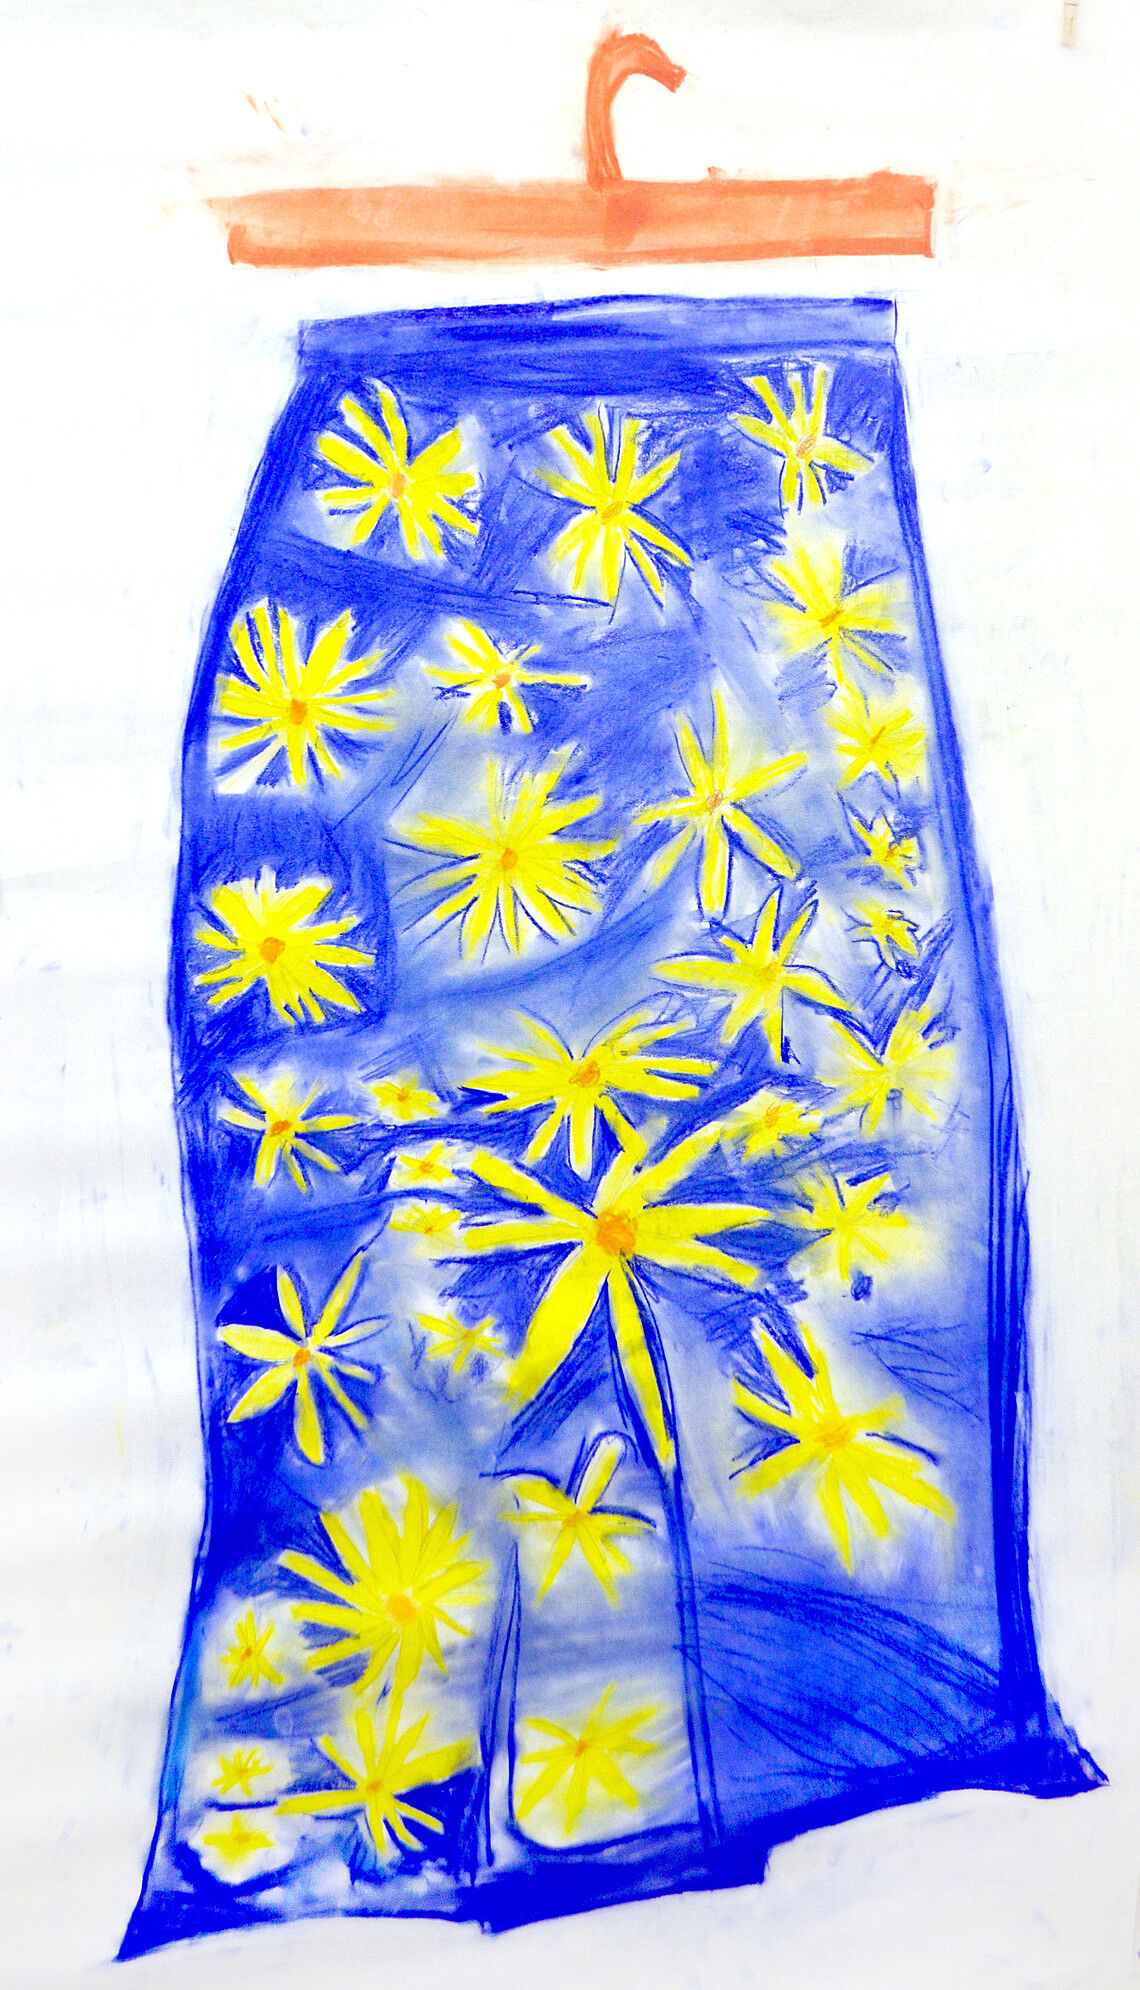 A drawing of a blue skirt with yellow flowers on it.